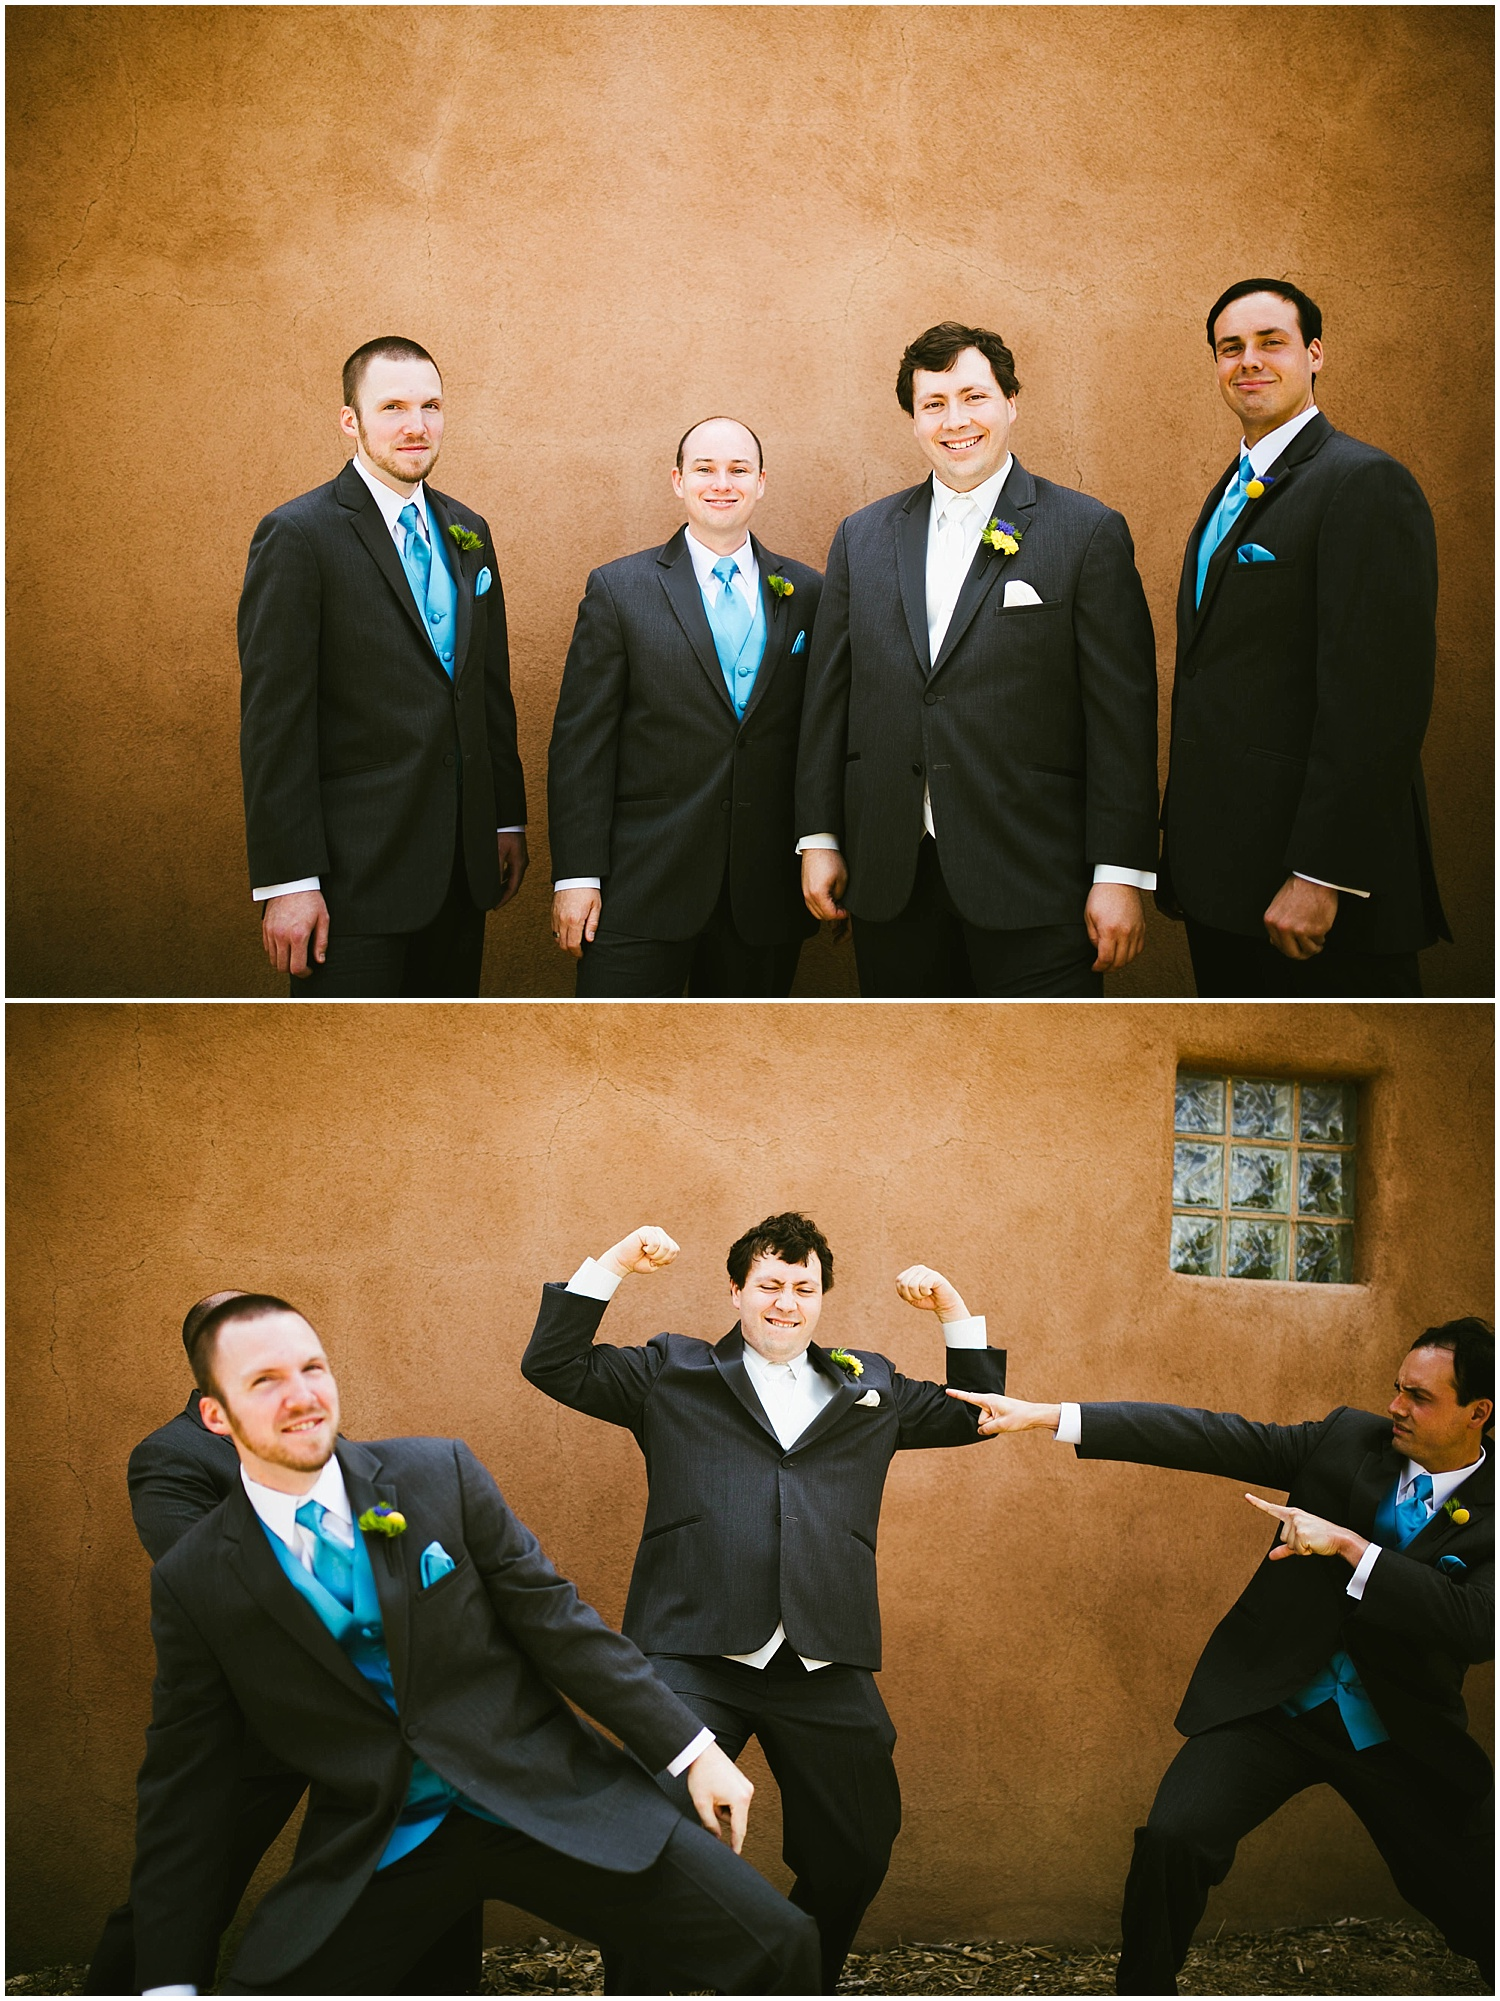 Groom Style + Groomsmen Style | Ryan proposed to Mallory at the Studio Ghibli Museum in Mitaka, Japan so it was fitting that their beautiful wedding day at Nature Pointe weddings in Tijeras, New Mexico was like a Miyazaki film come to life. A lot of planning went into their wedding. The magic of Miyazaki's films is unlike any other so incorporating the magnificence of his imagination into Mallory + Ryan's wedding day was a must. The intricacy of their wedding details were absolutely AMAZING!